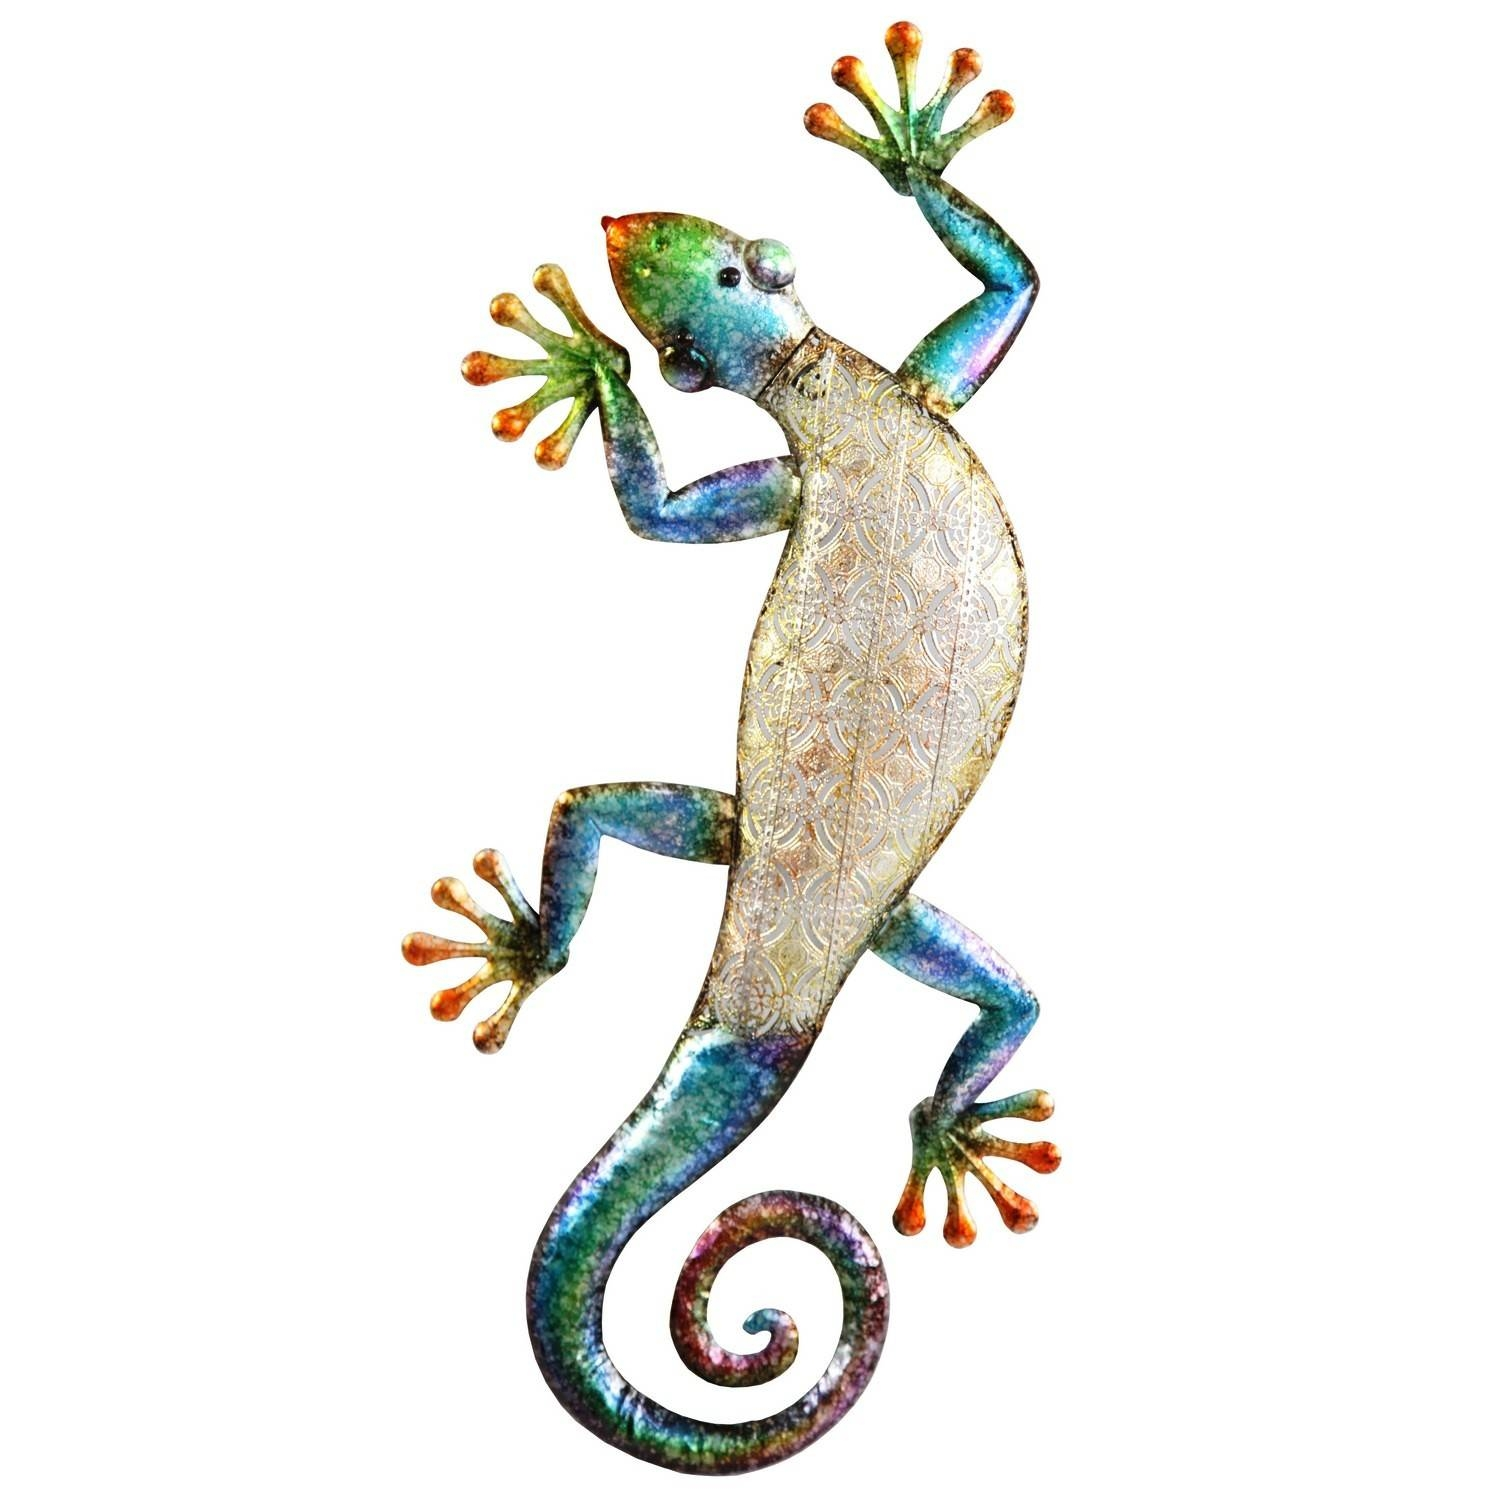 Metal Wall Art Gecko | Decorcave For Most Up To Date Gecko Metal Wall Art (View 12 of 20)